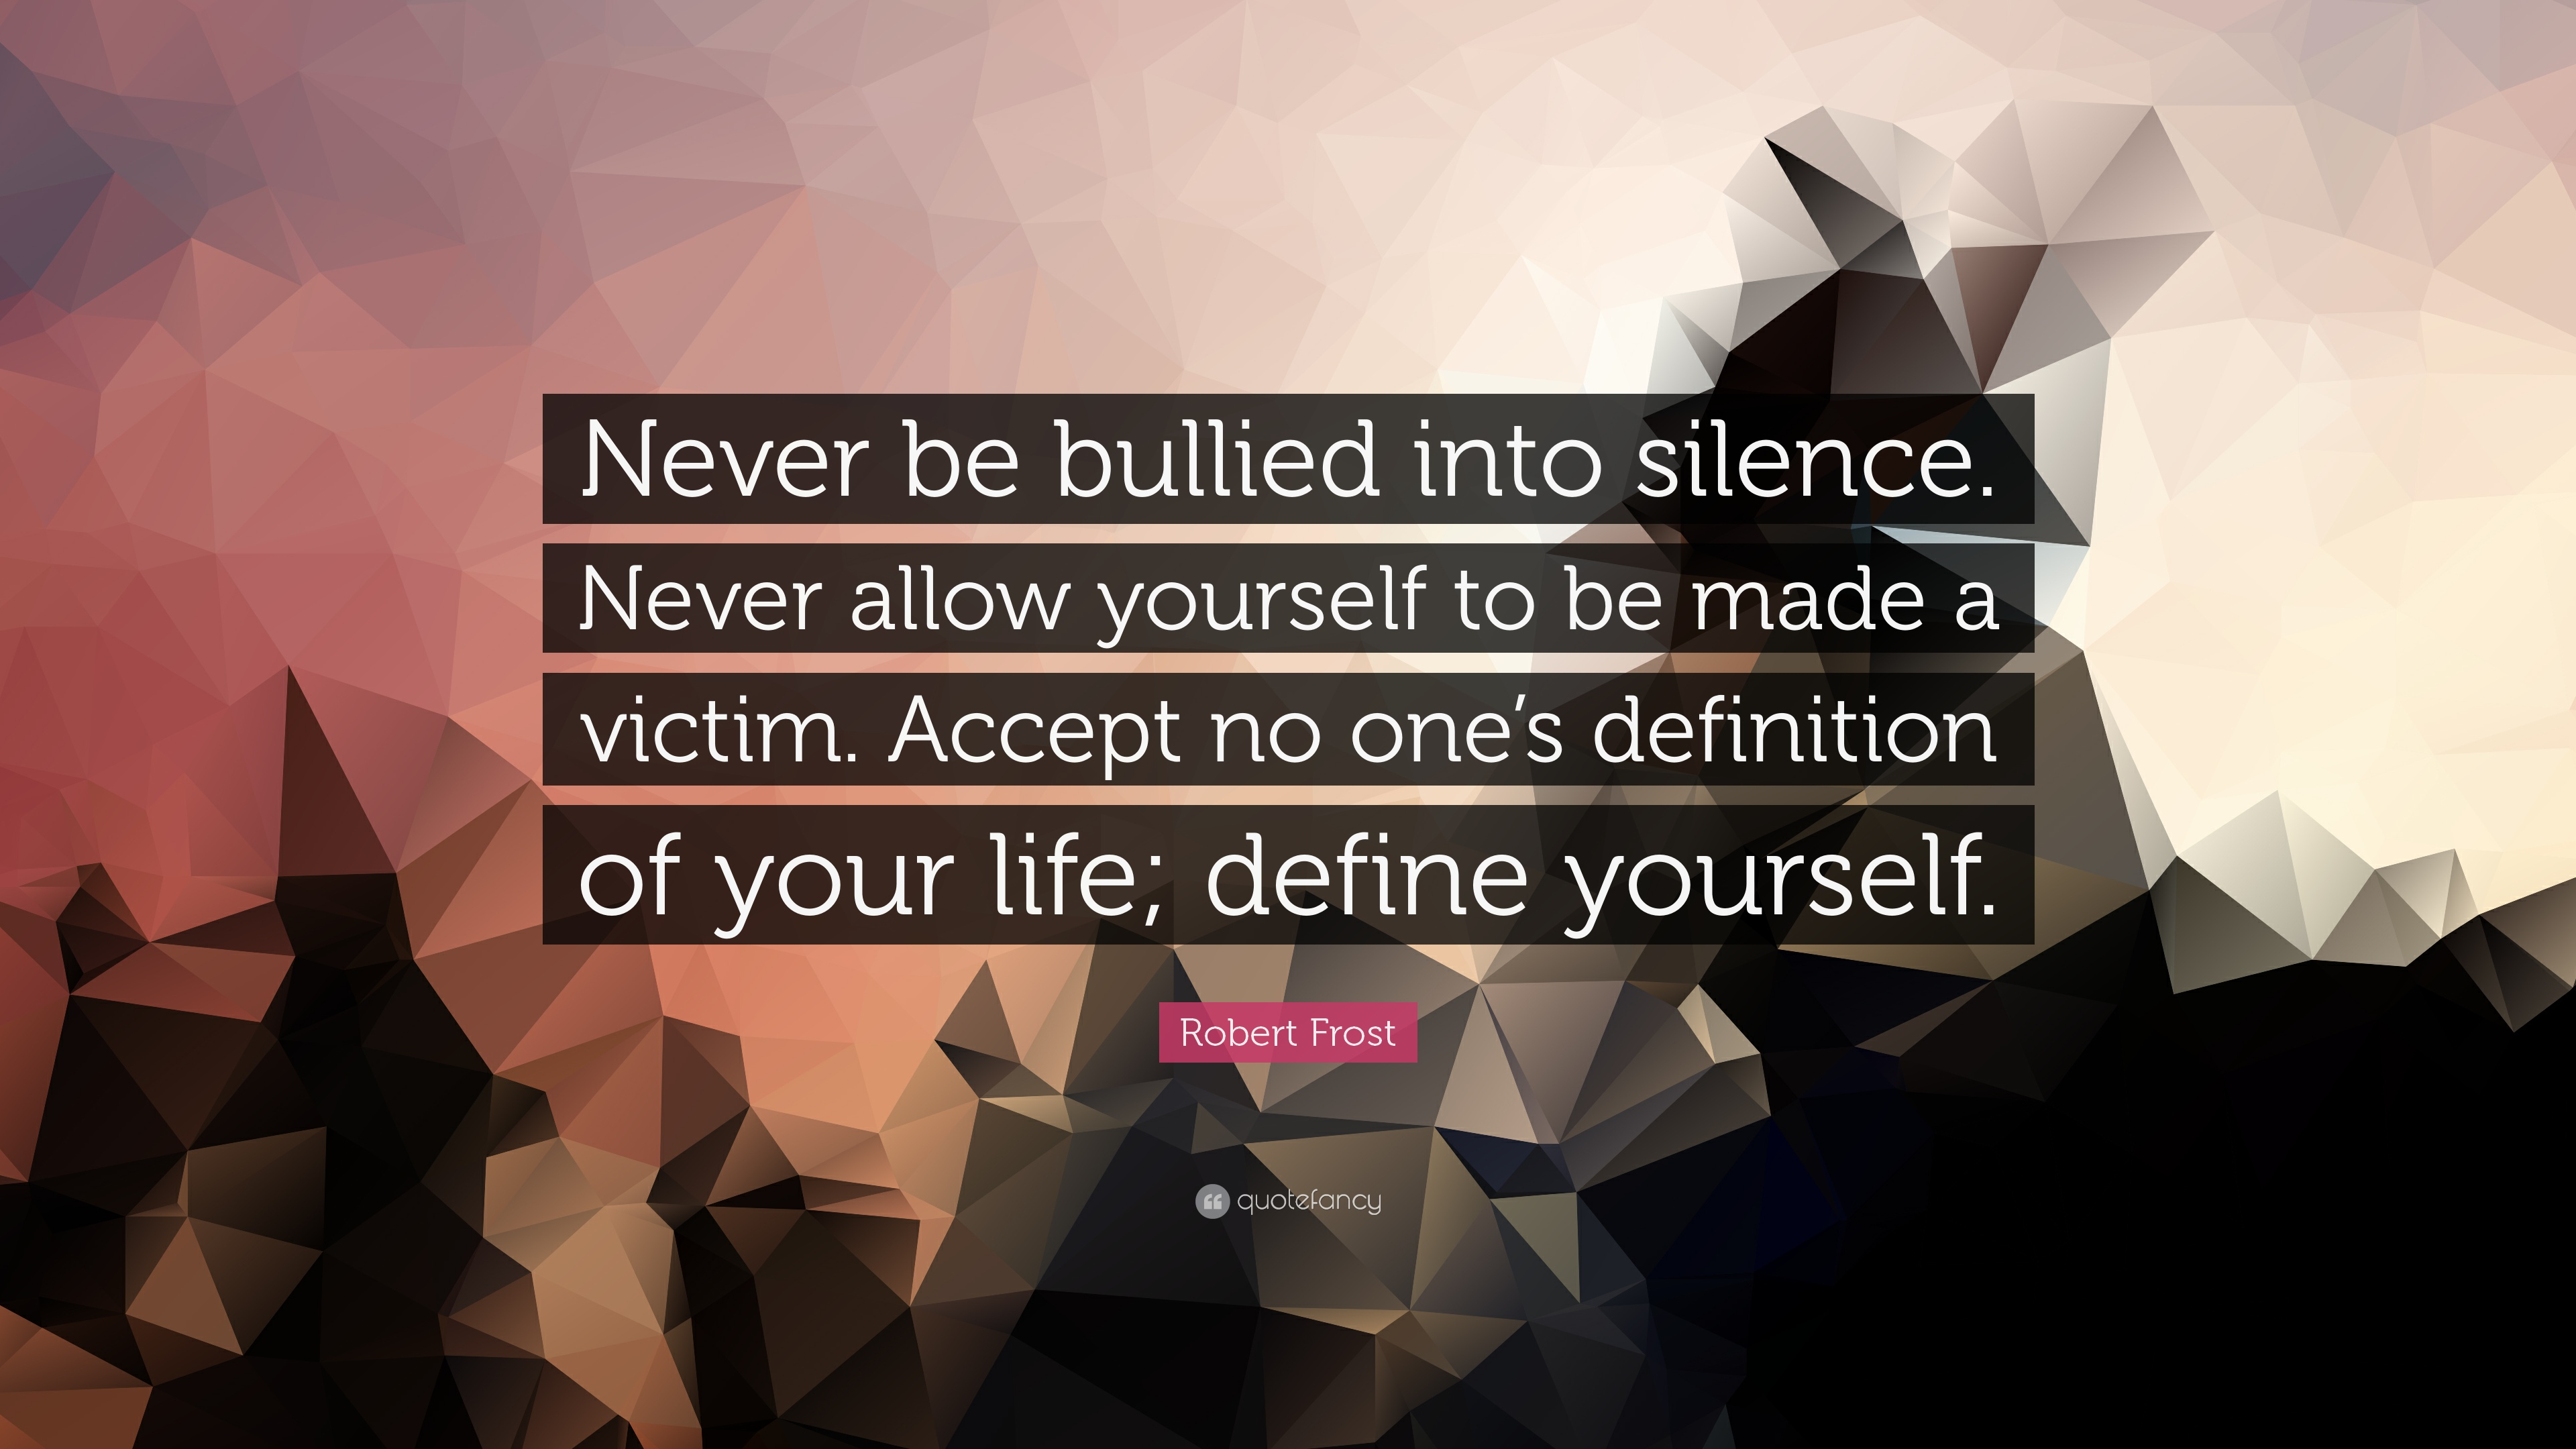 robert frost quote never be bullied into silence never allow robert frost quote never be bullied into silence never allow yourself to be